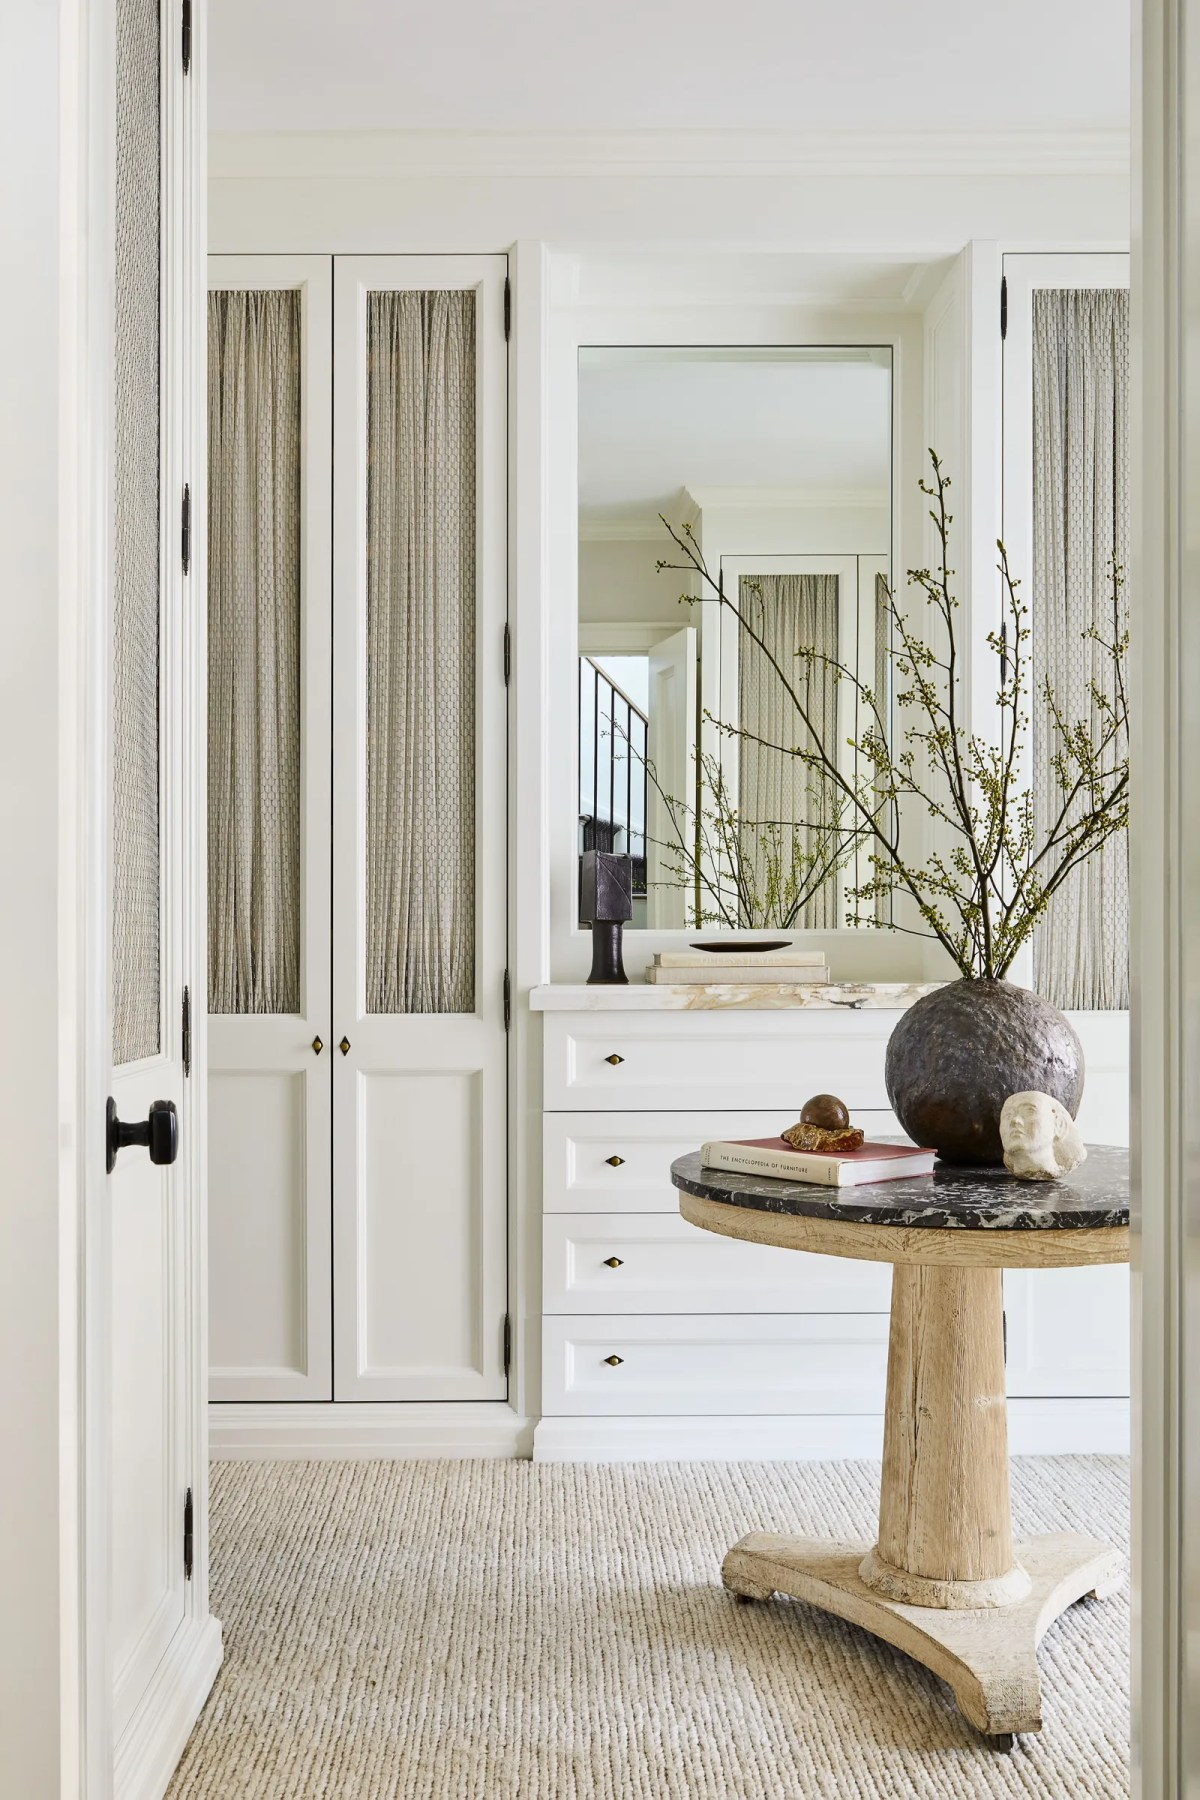 The master dressing room features custom cabinetry by Hetman. Vase by Casey Zablocki atop a 19thcentury French table.